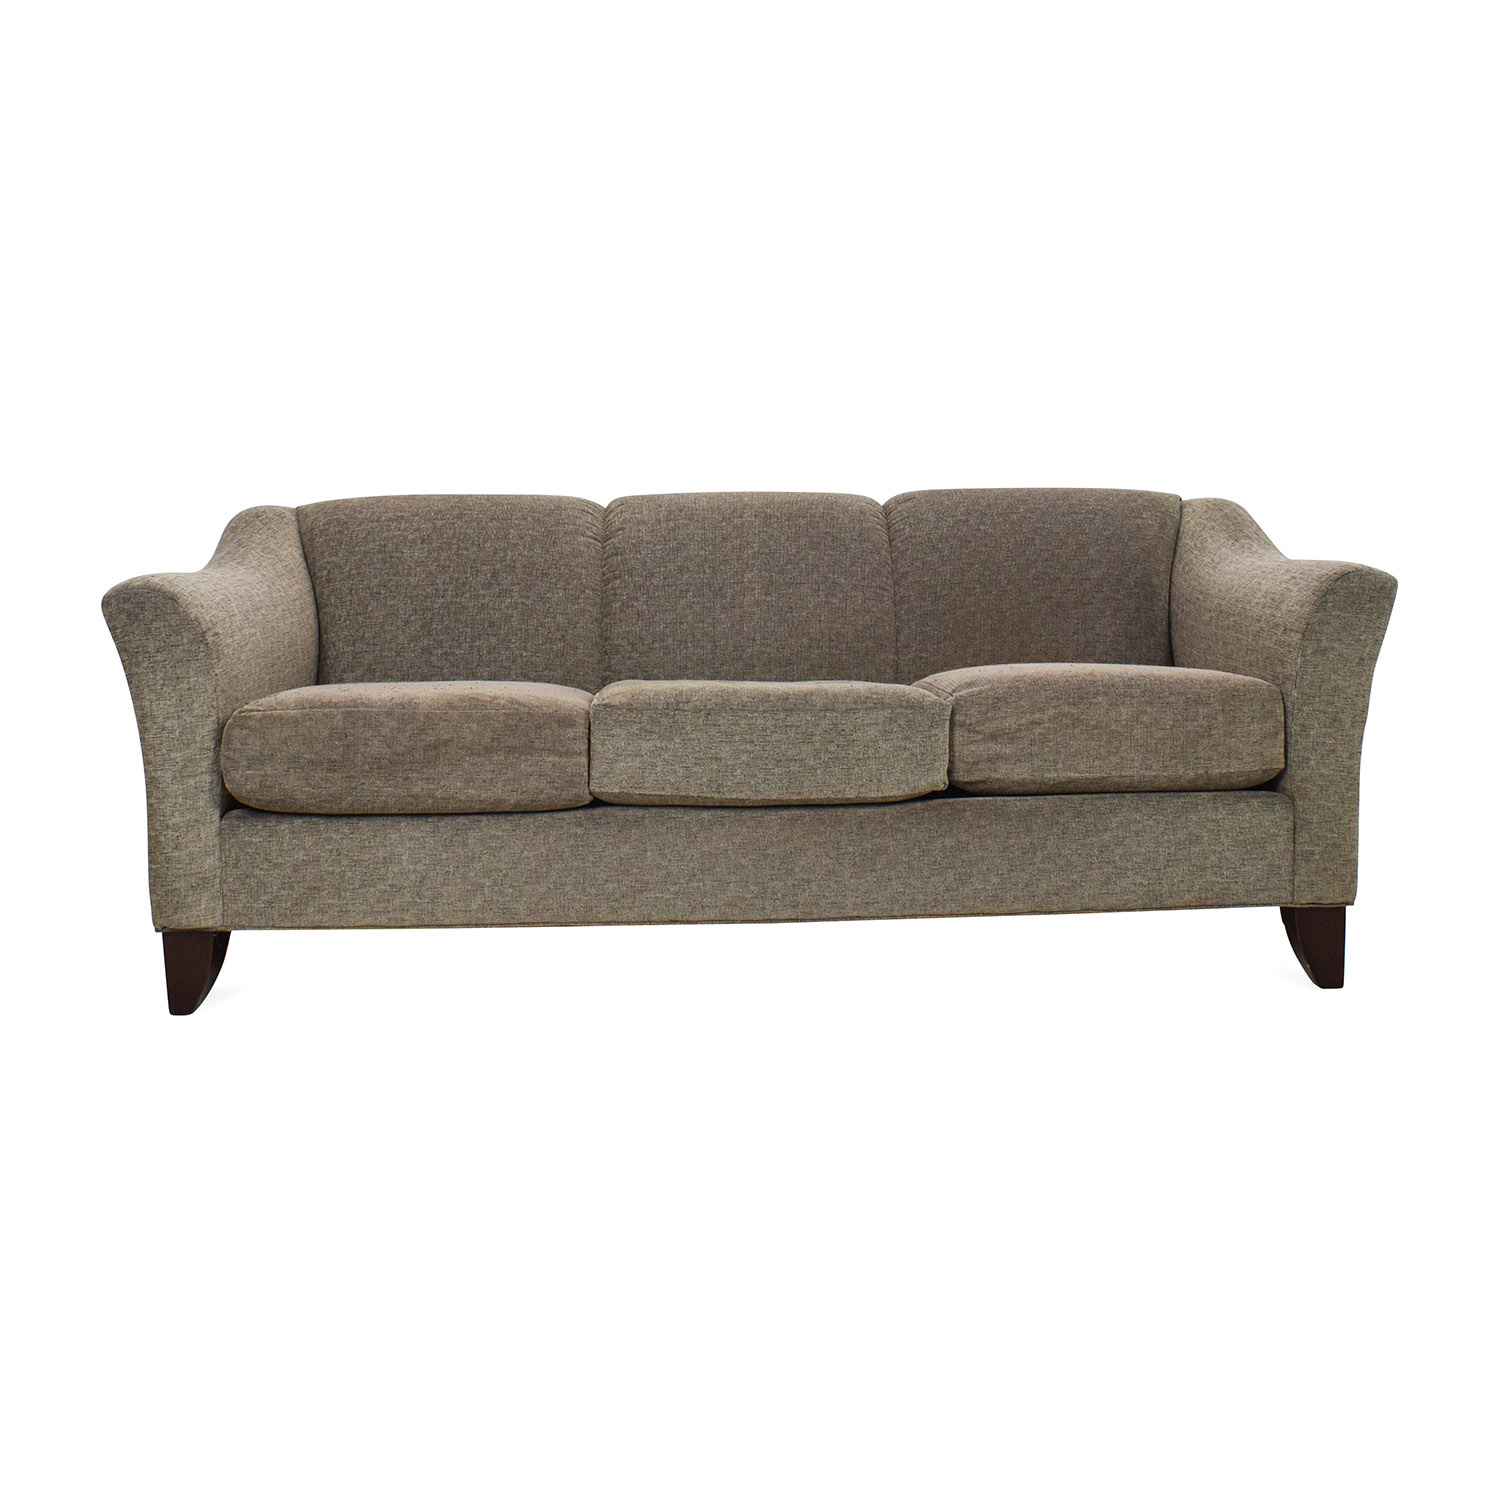 Exceptional Raymour And Flanigan Raymour U0026 Flanigan Meyer Chenille Sofa Price ...